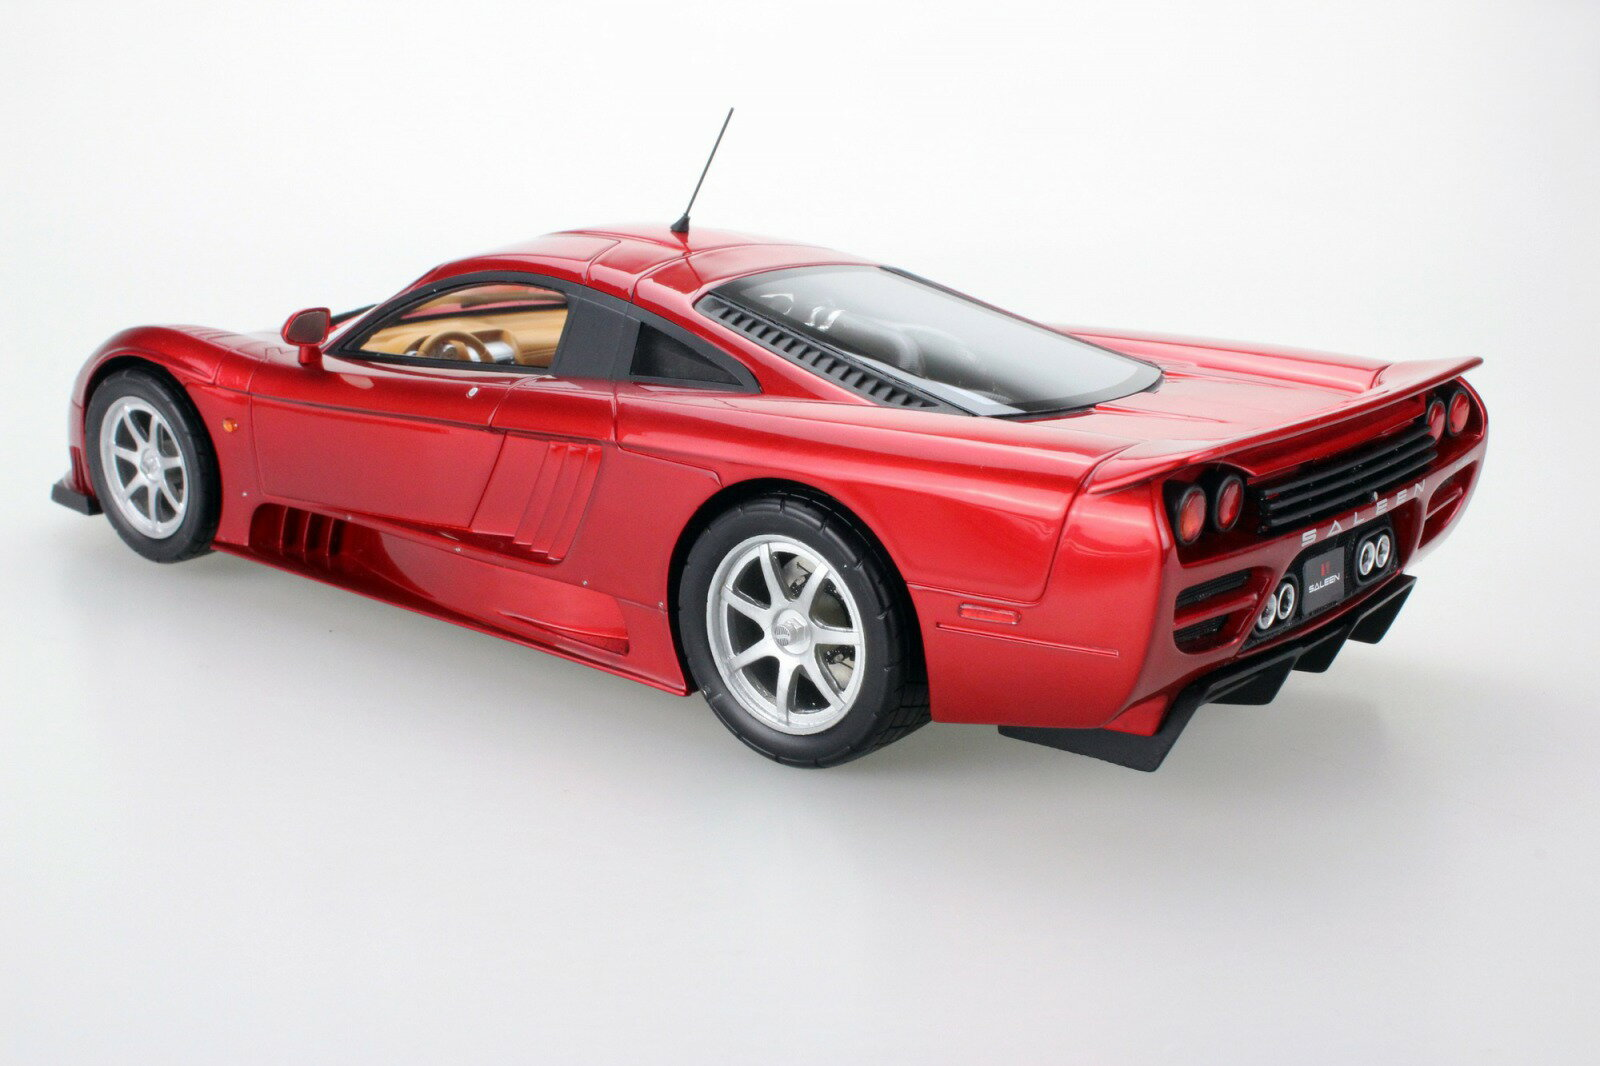 Top Marques トップマルケス 1:18 2004年モデル サリーン S7 Twin TurboSALEEN - S7 TWIN TURBO 2004 1/18 by Top Marques NEW USA